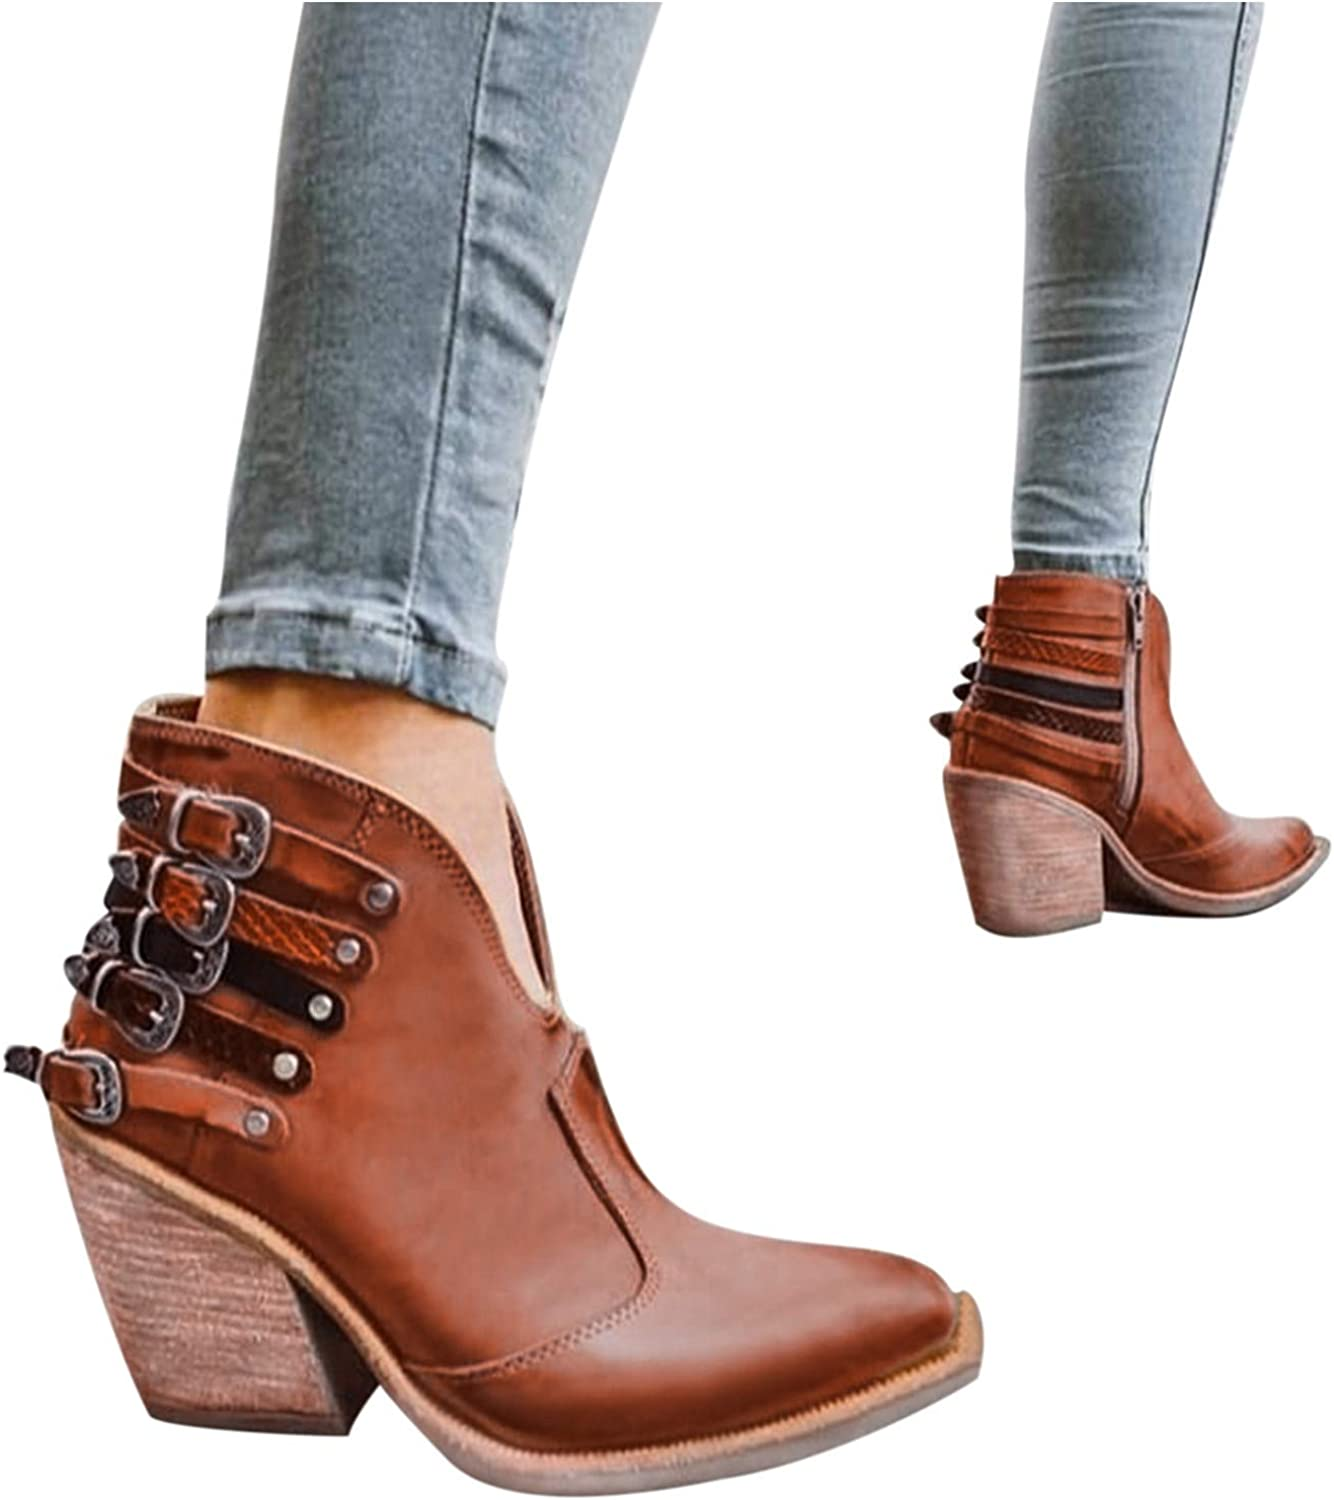 Ankle Boots for Women,Womens Booties Retro Low Heel Comfort Ankle Boots Buckle Zipper Roman Ruched Walking Shoes